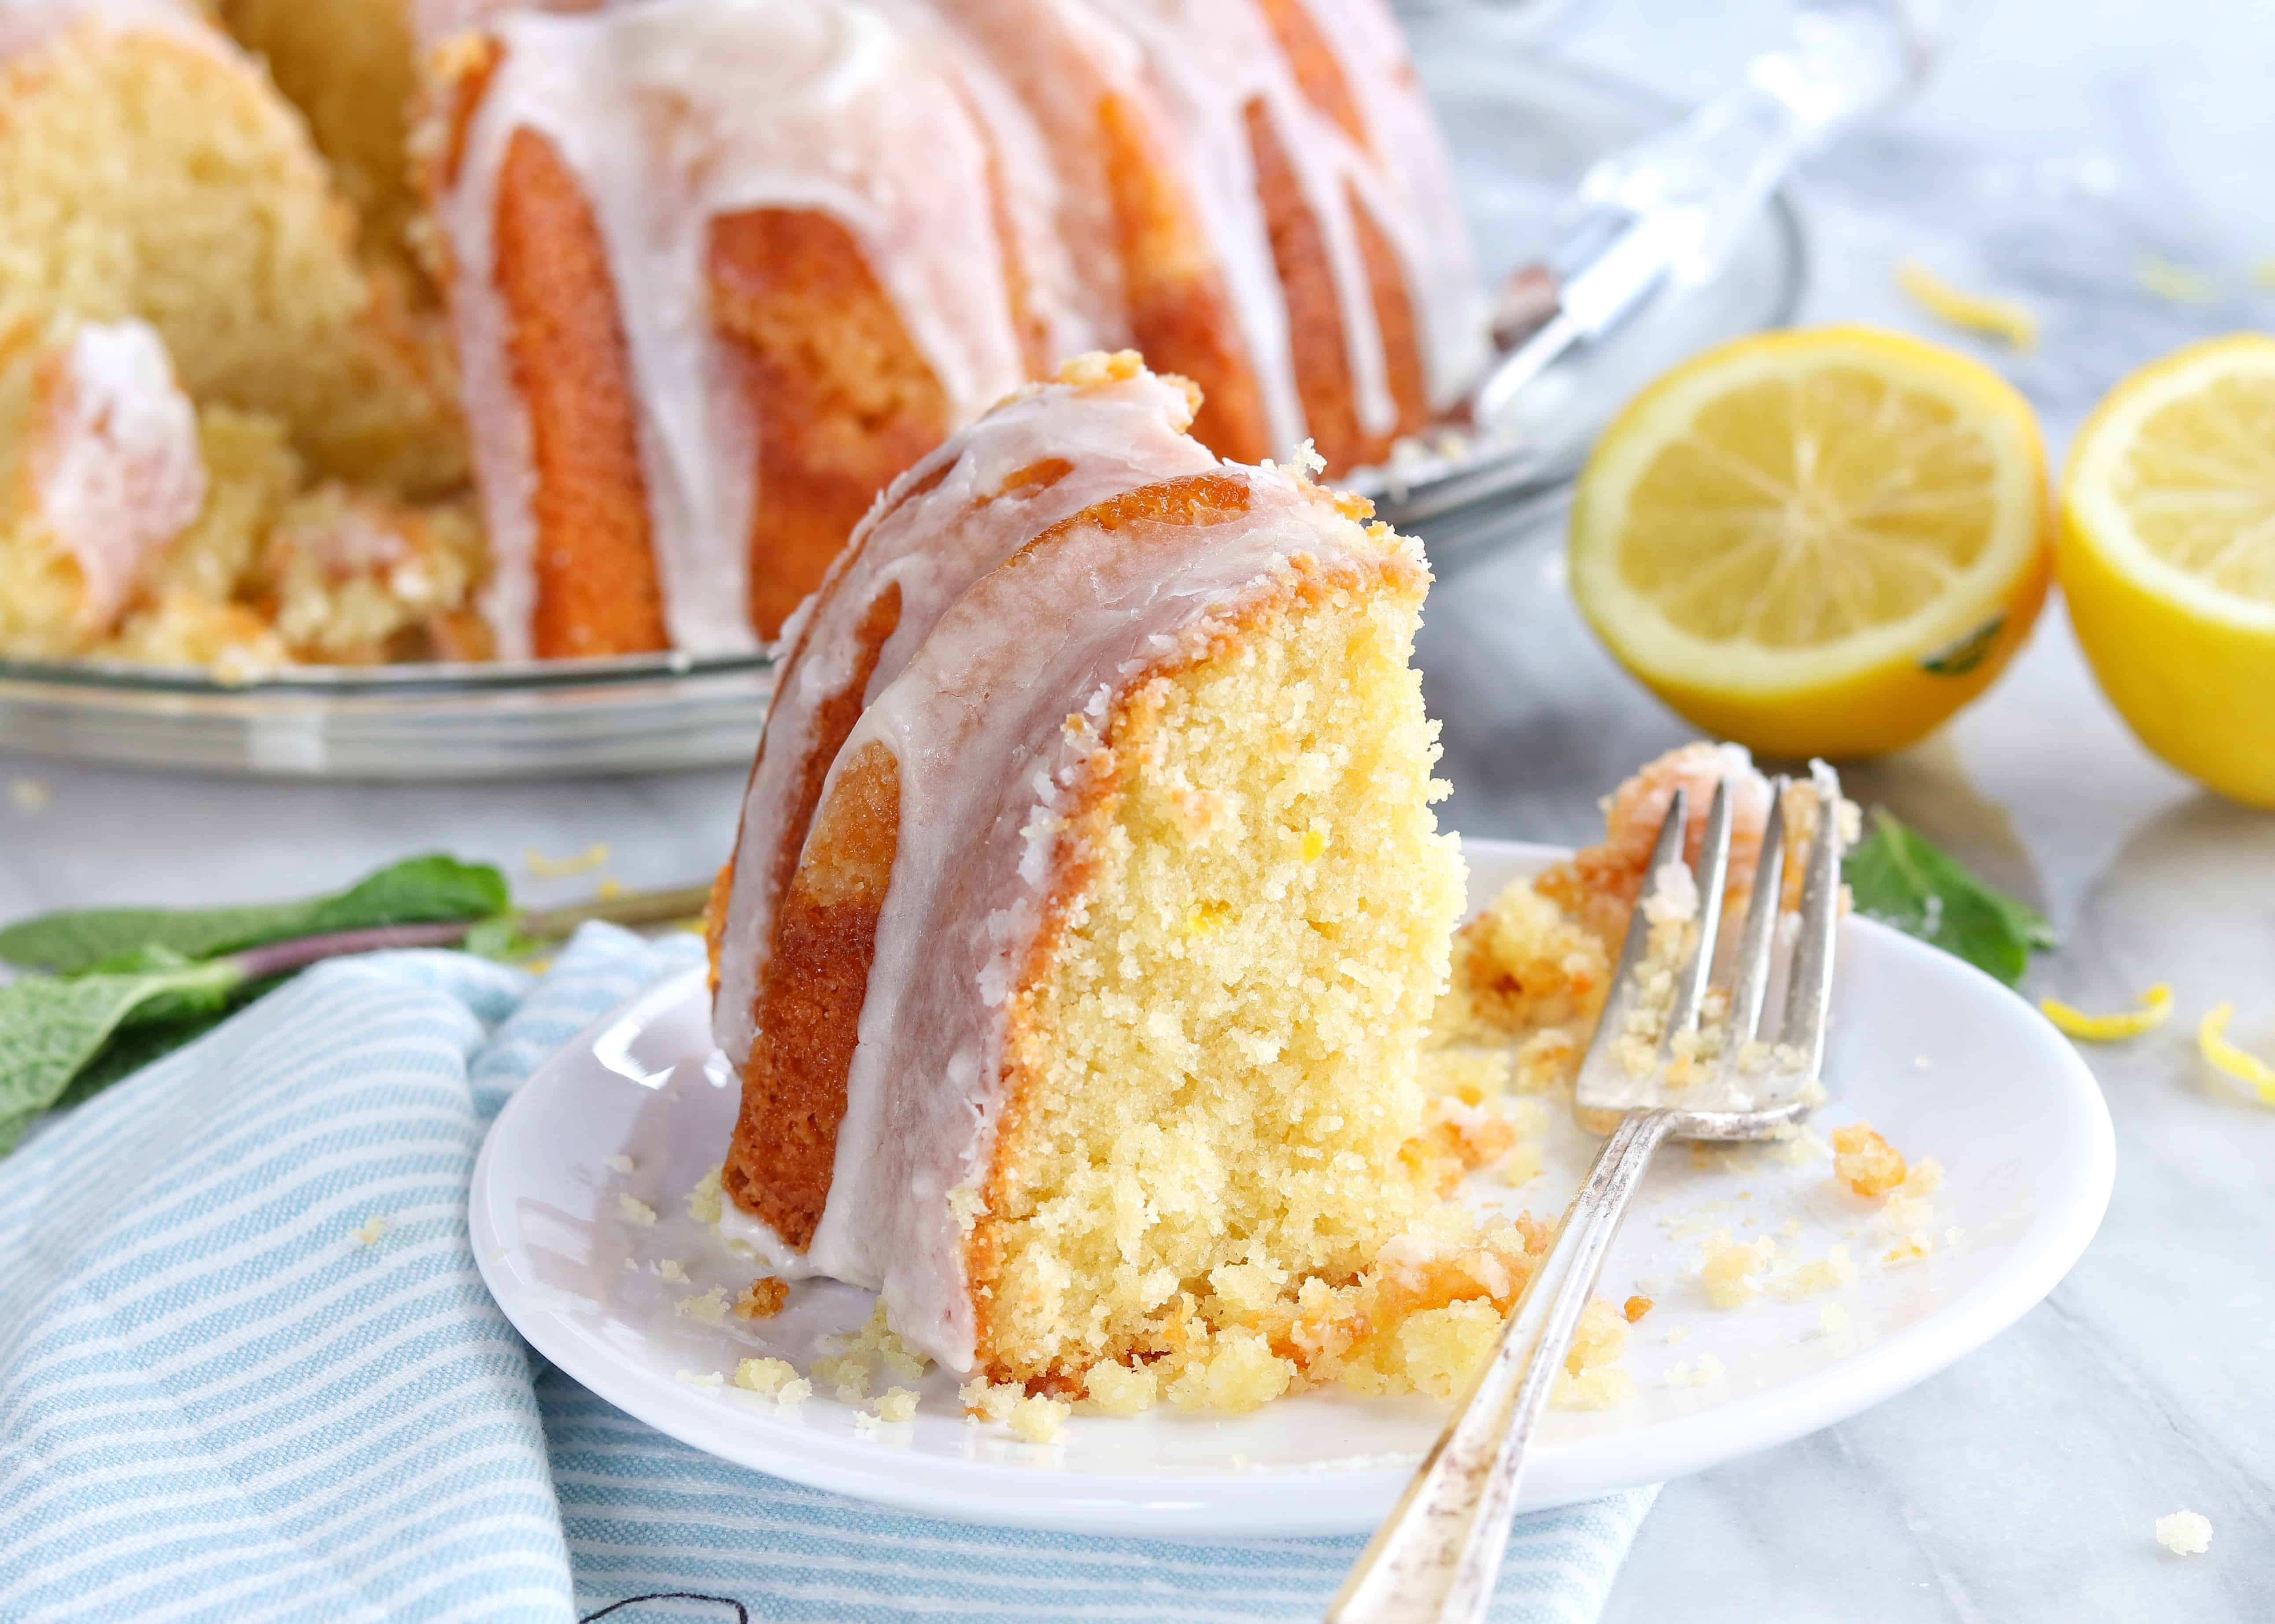 My favorite Lemon Pound Cake of all time!